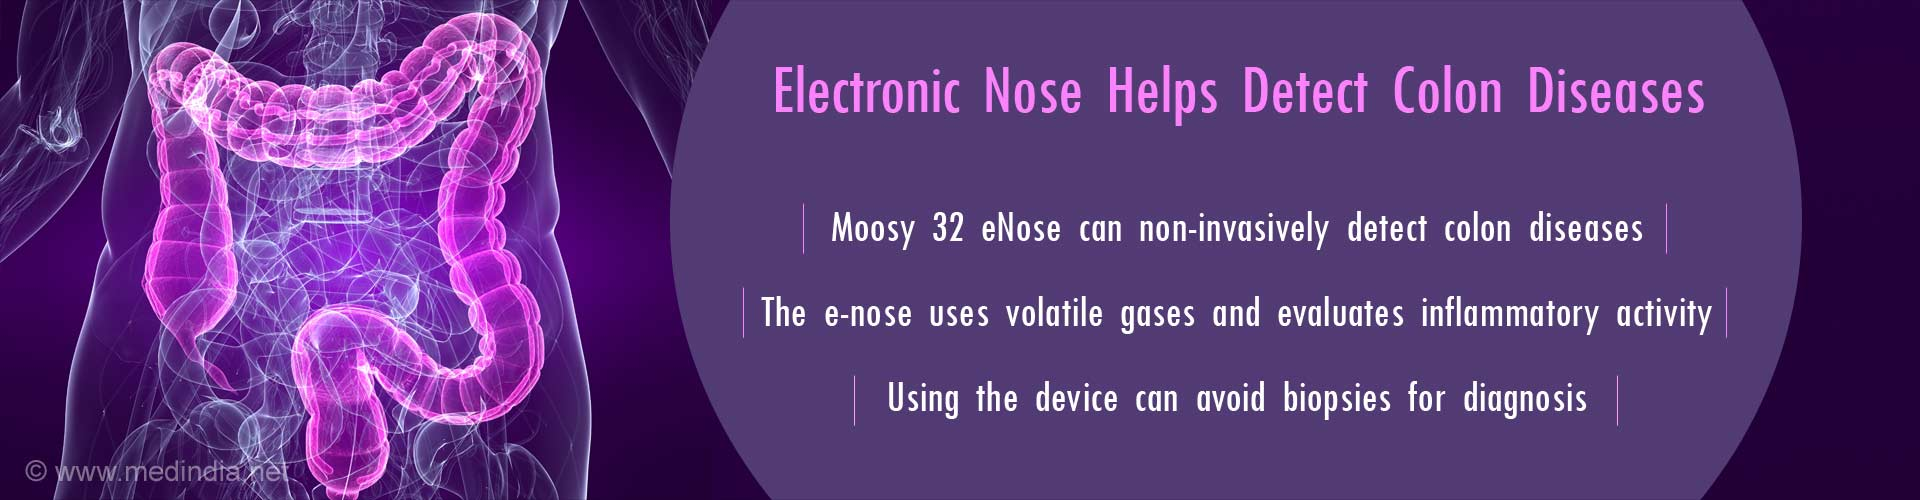 Moosy 32 ENose Detects Colon Disease Without A Biopsy